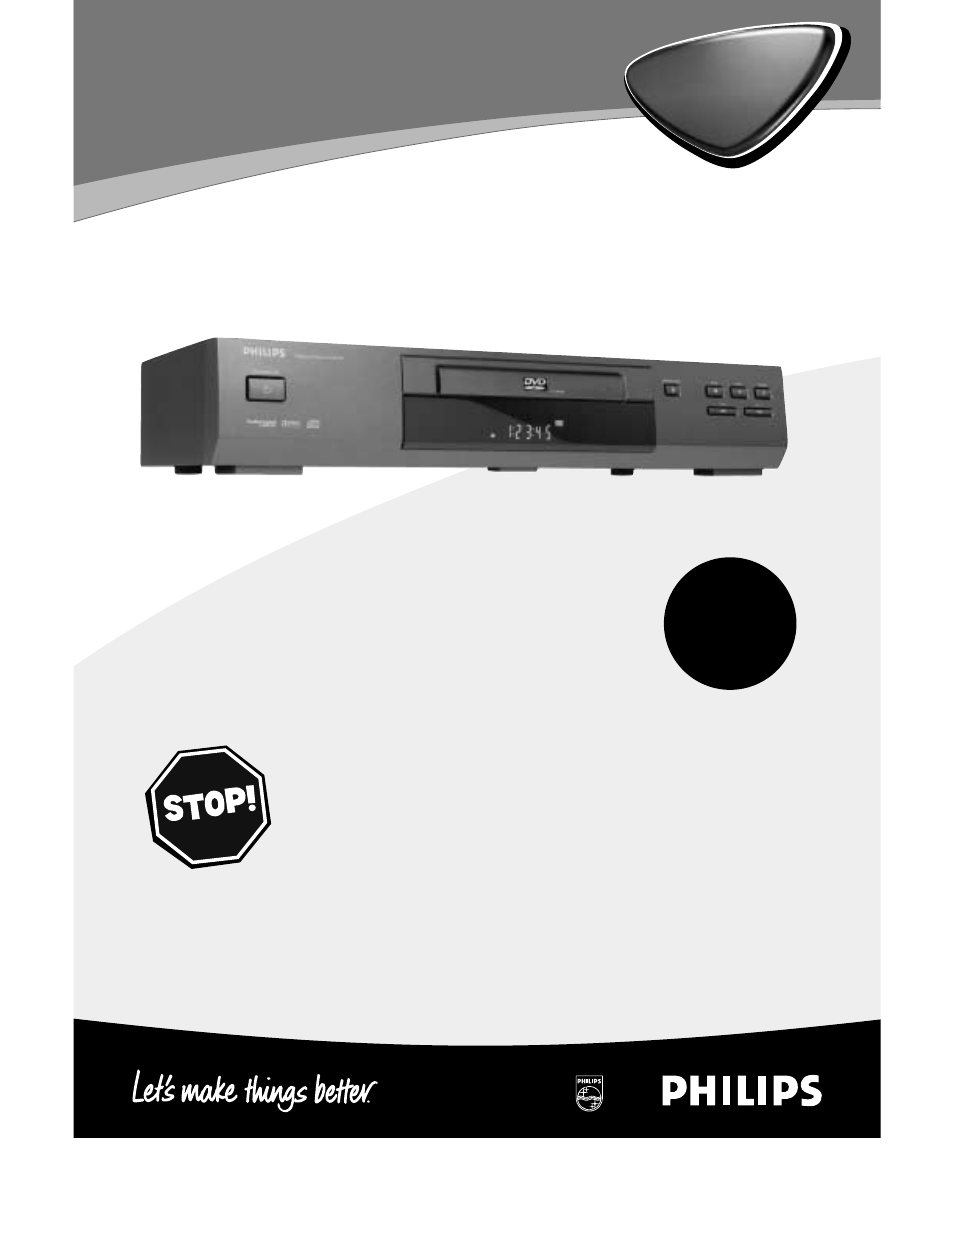 philips dvd619 user manual 55 pages also for dvd619at rh manualsdir com Multiple Disc Blue Ray Player Multiple Disc Blue Ray Player